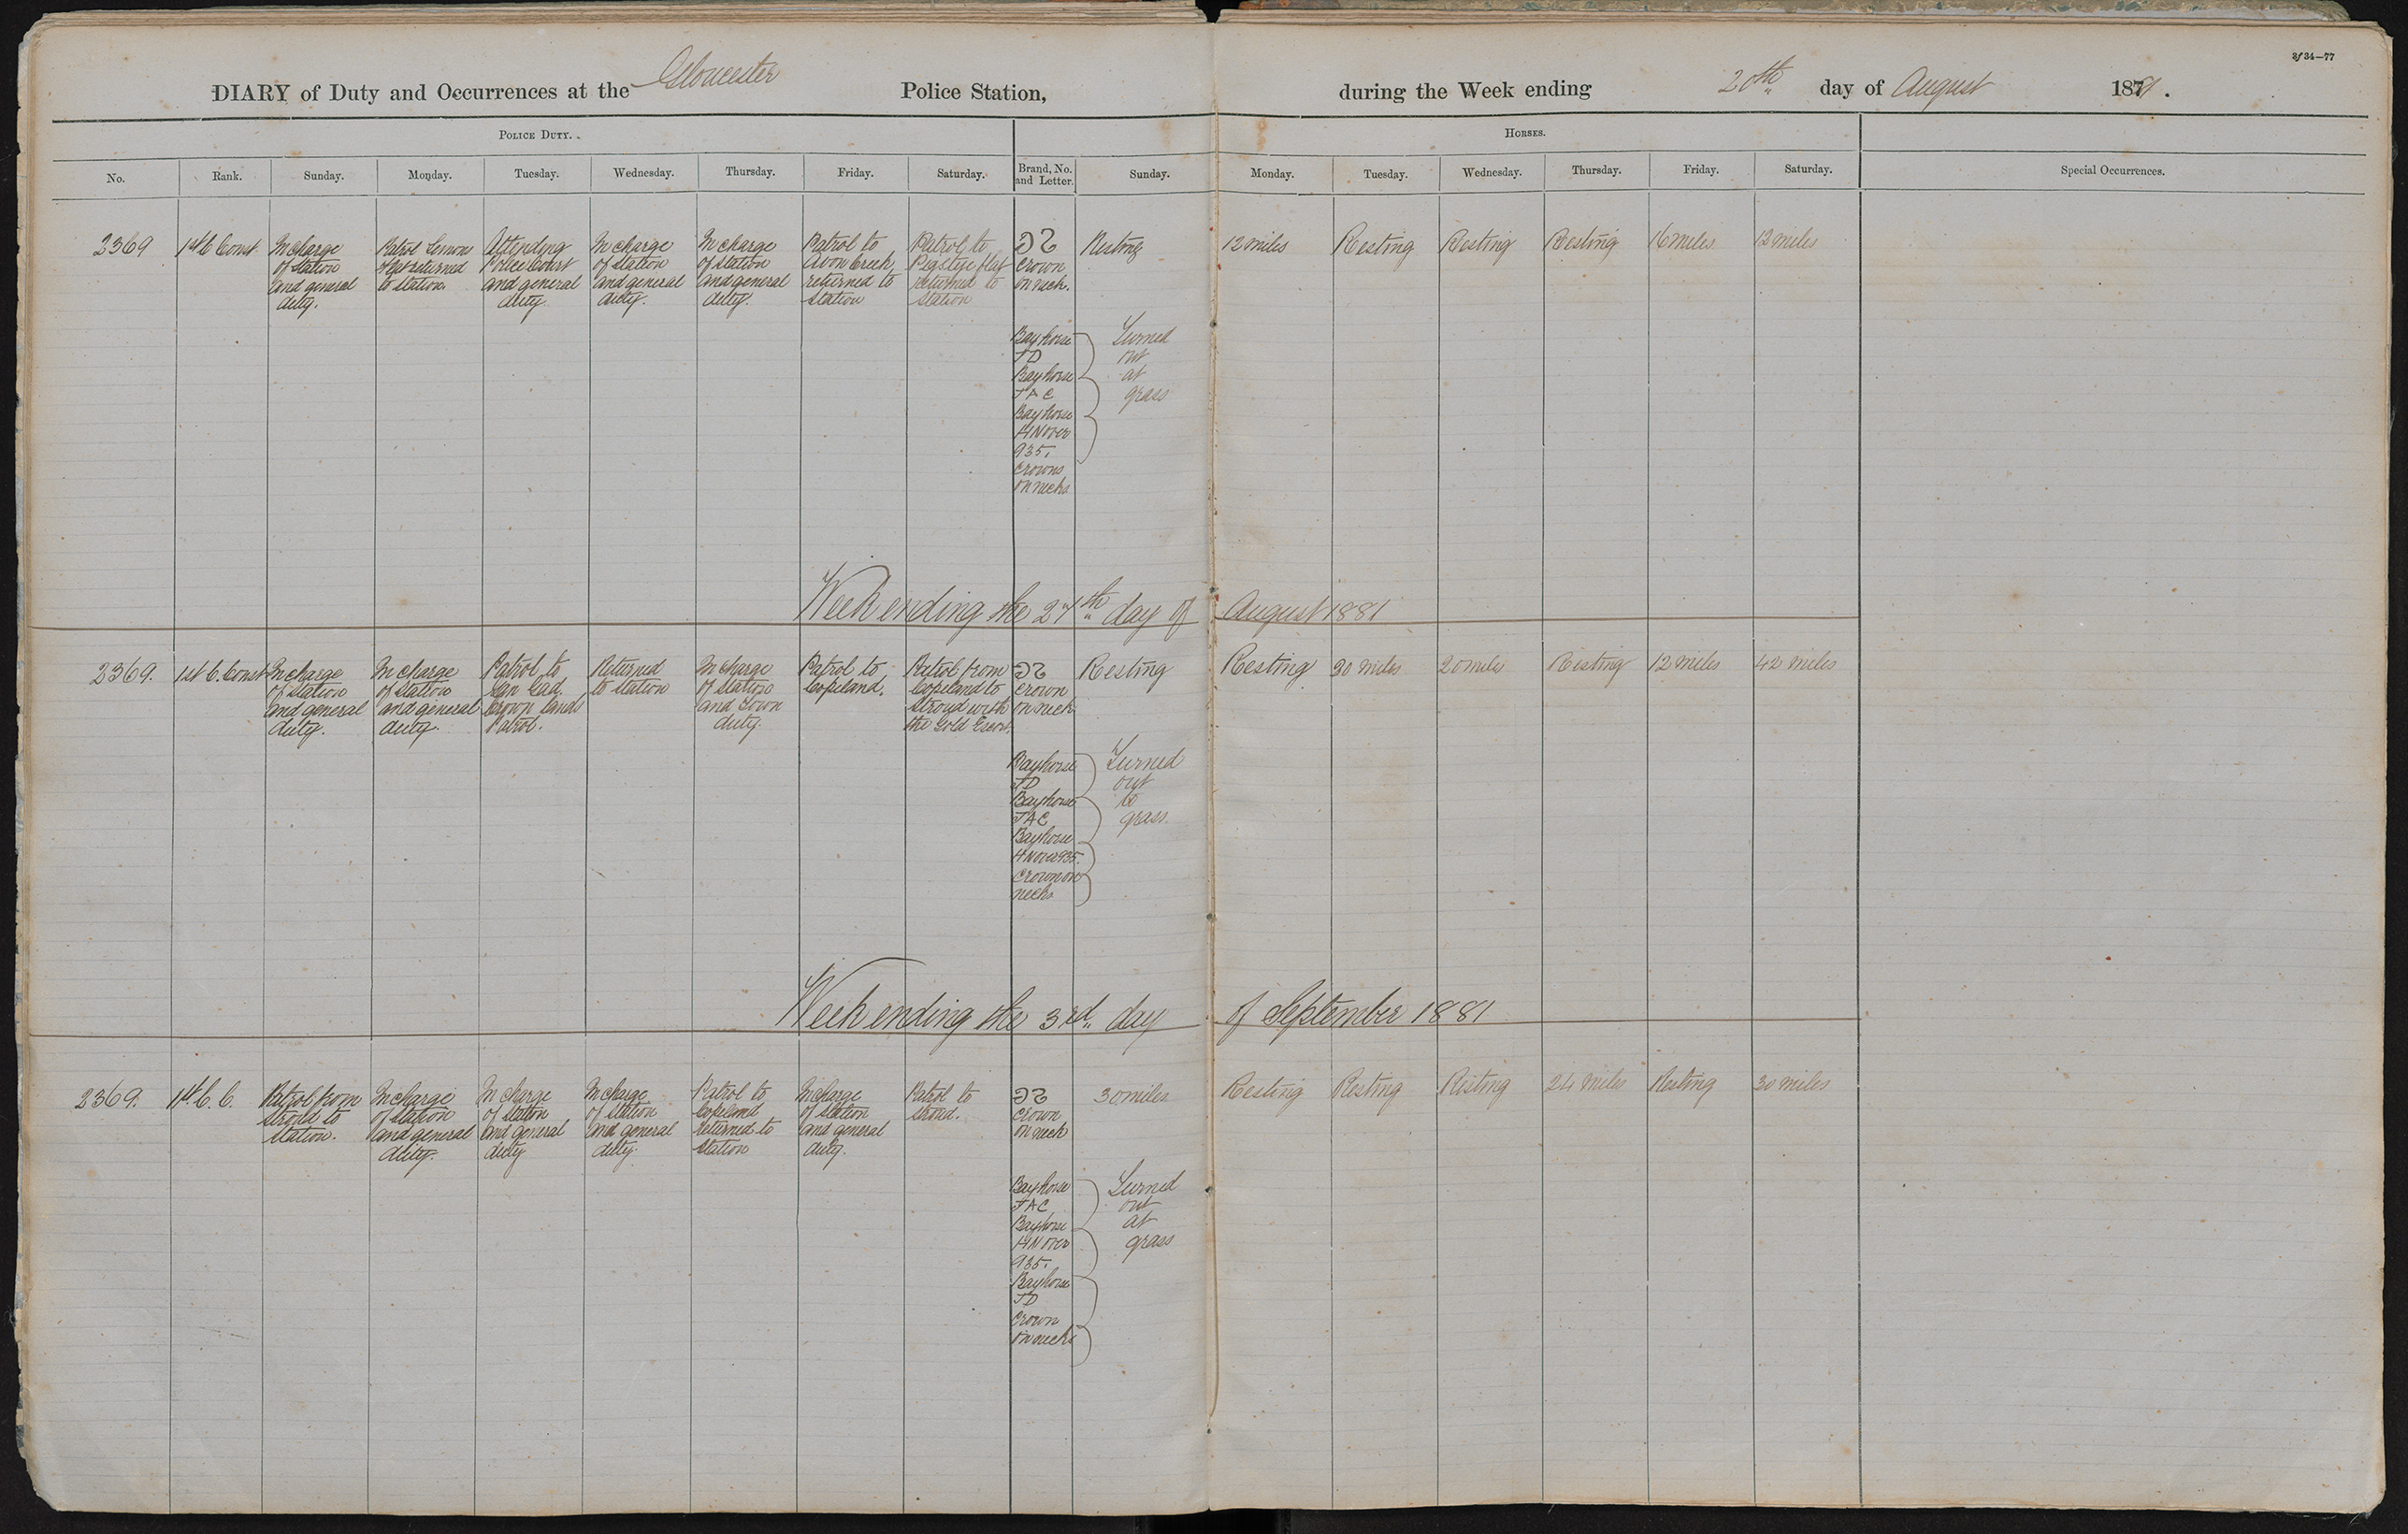 Diary of duty and occurrences at the Gloucester Police Station during the week ending the 20th day of August 1881